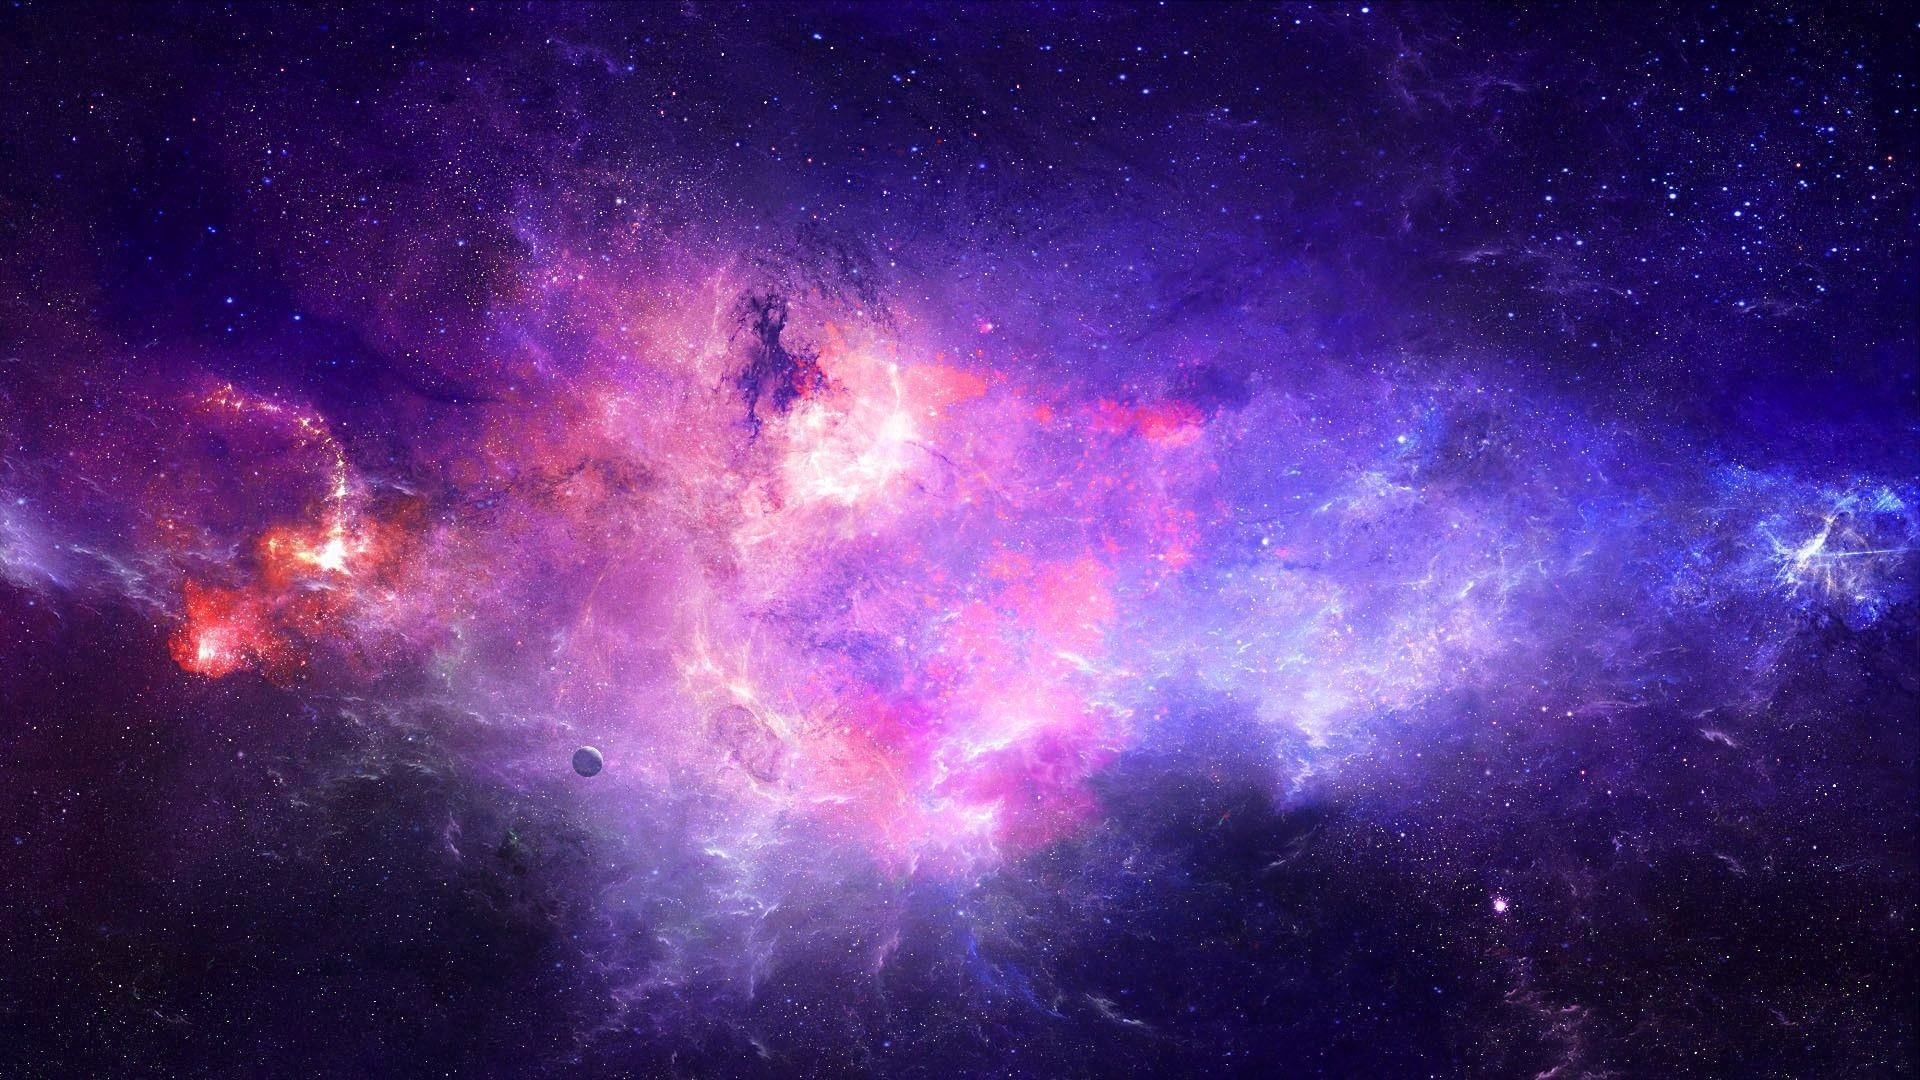 Galaxy Wallpaper Download Free Awesome High Resolution